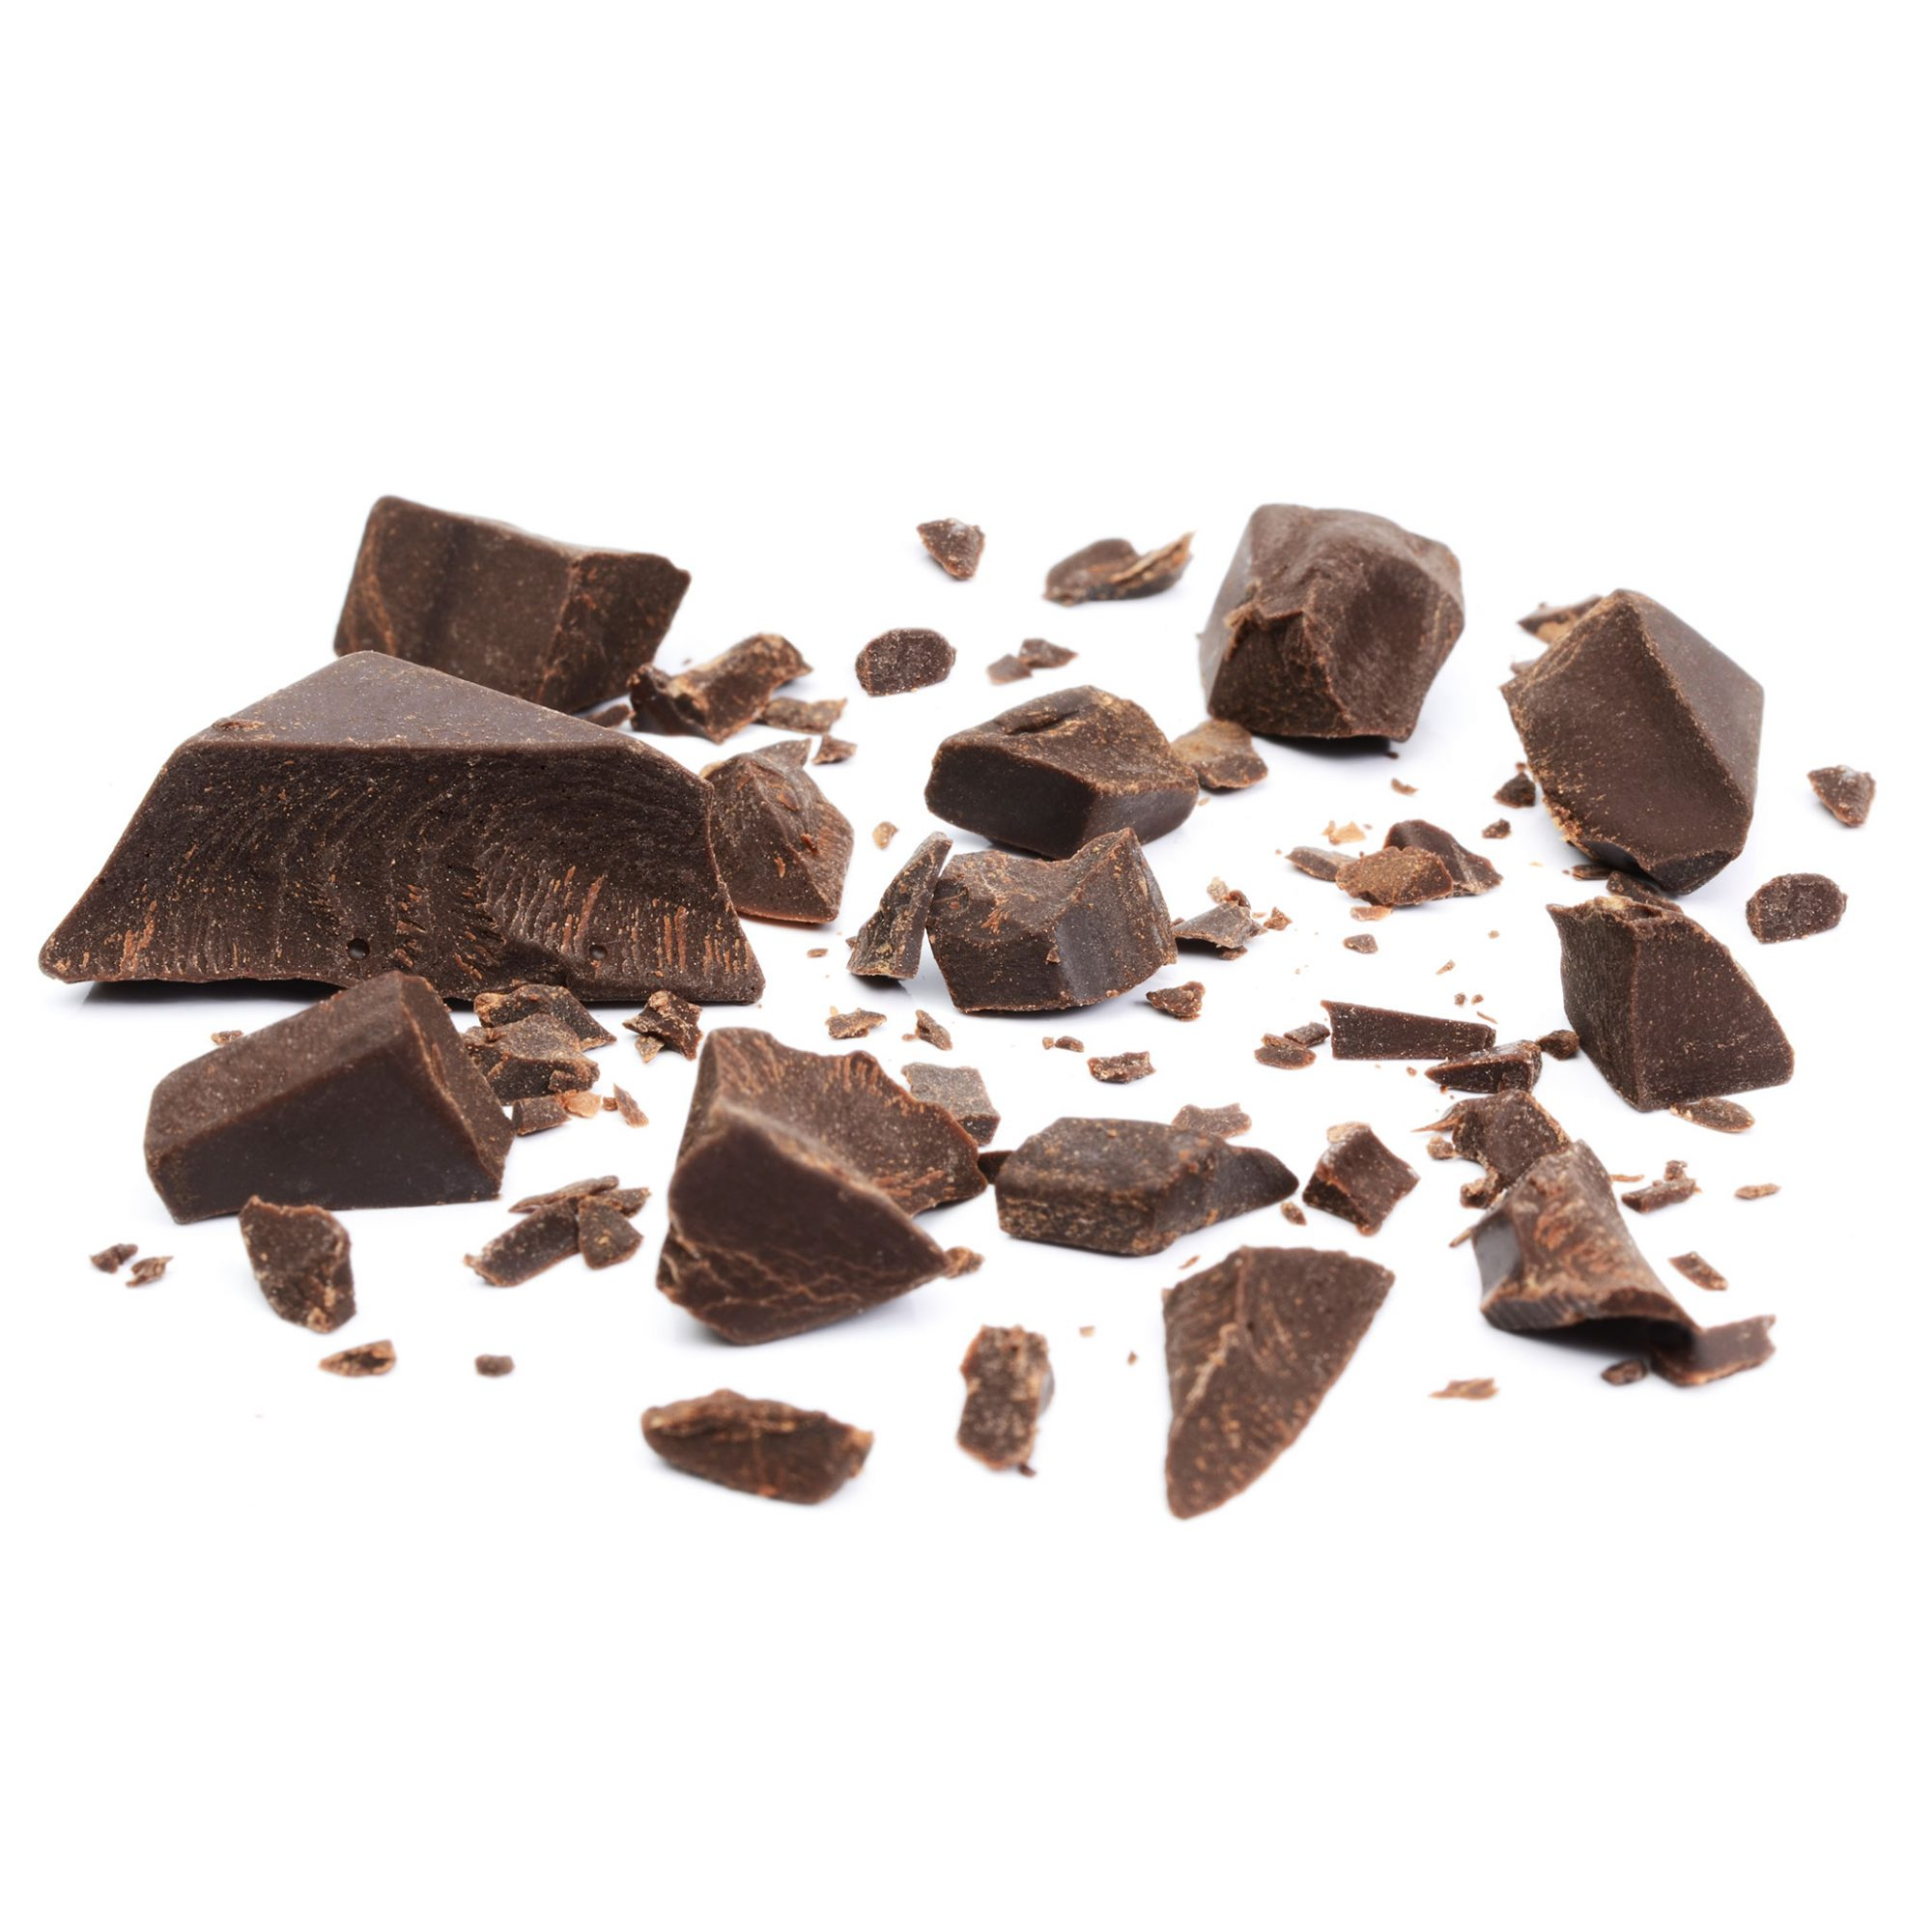 7 Things You Didn't Know About Chocolate